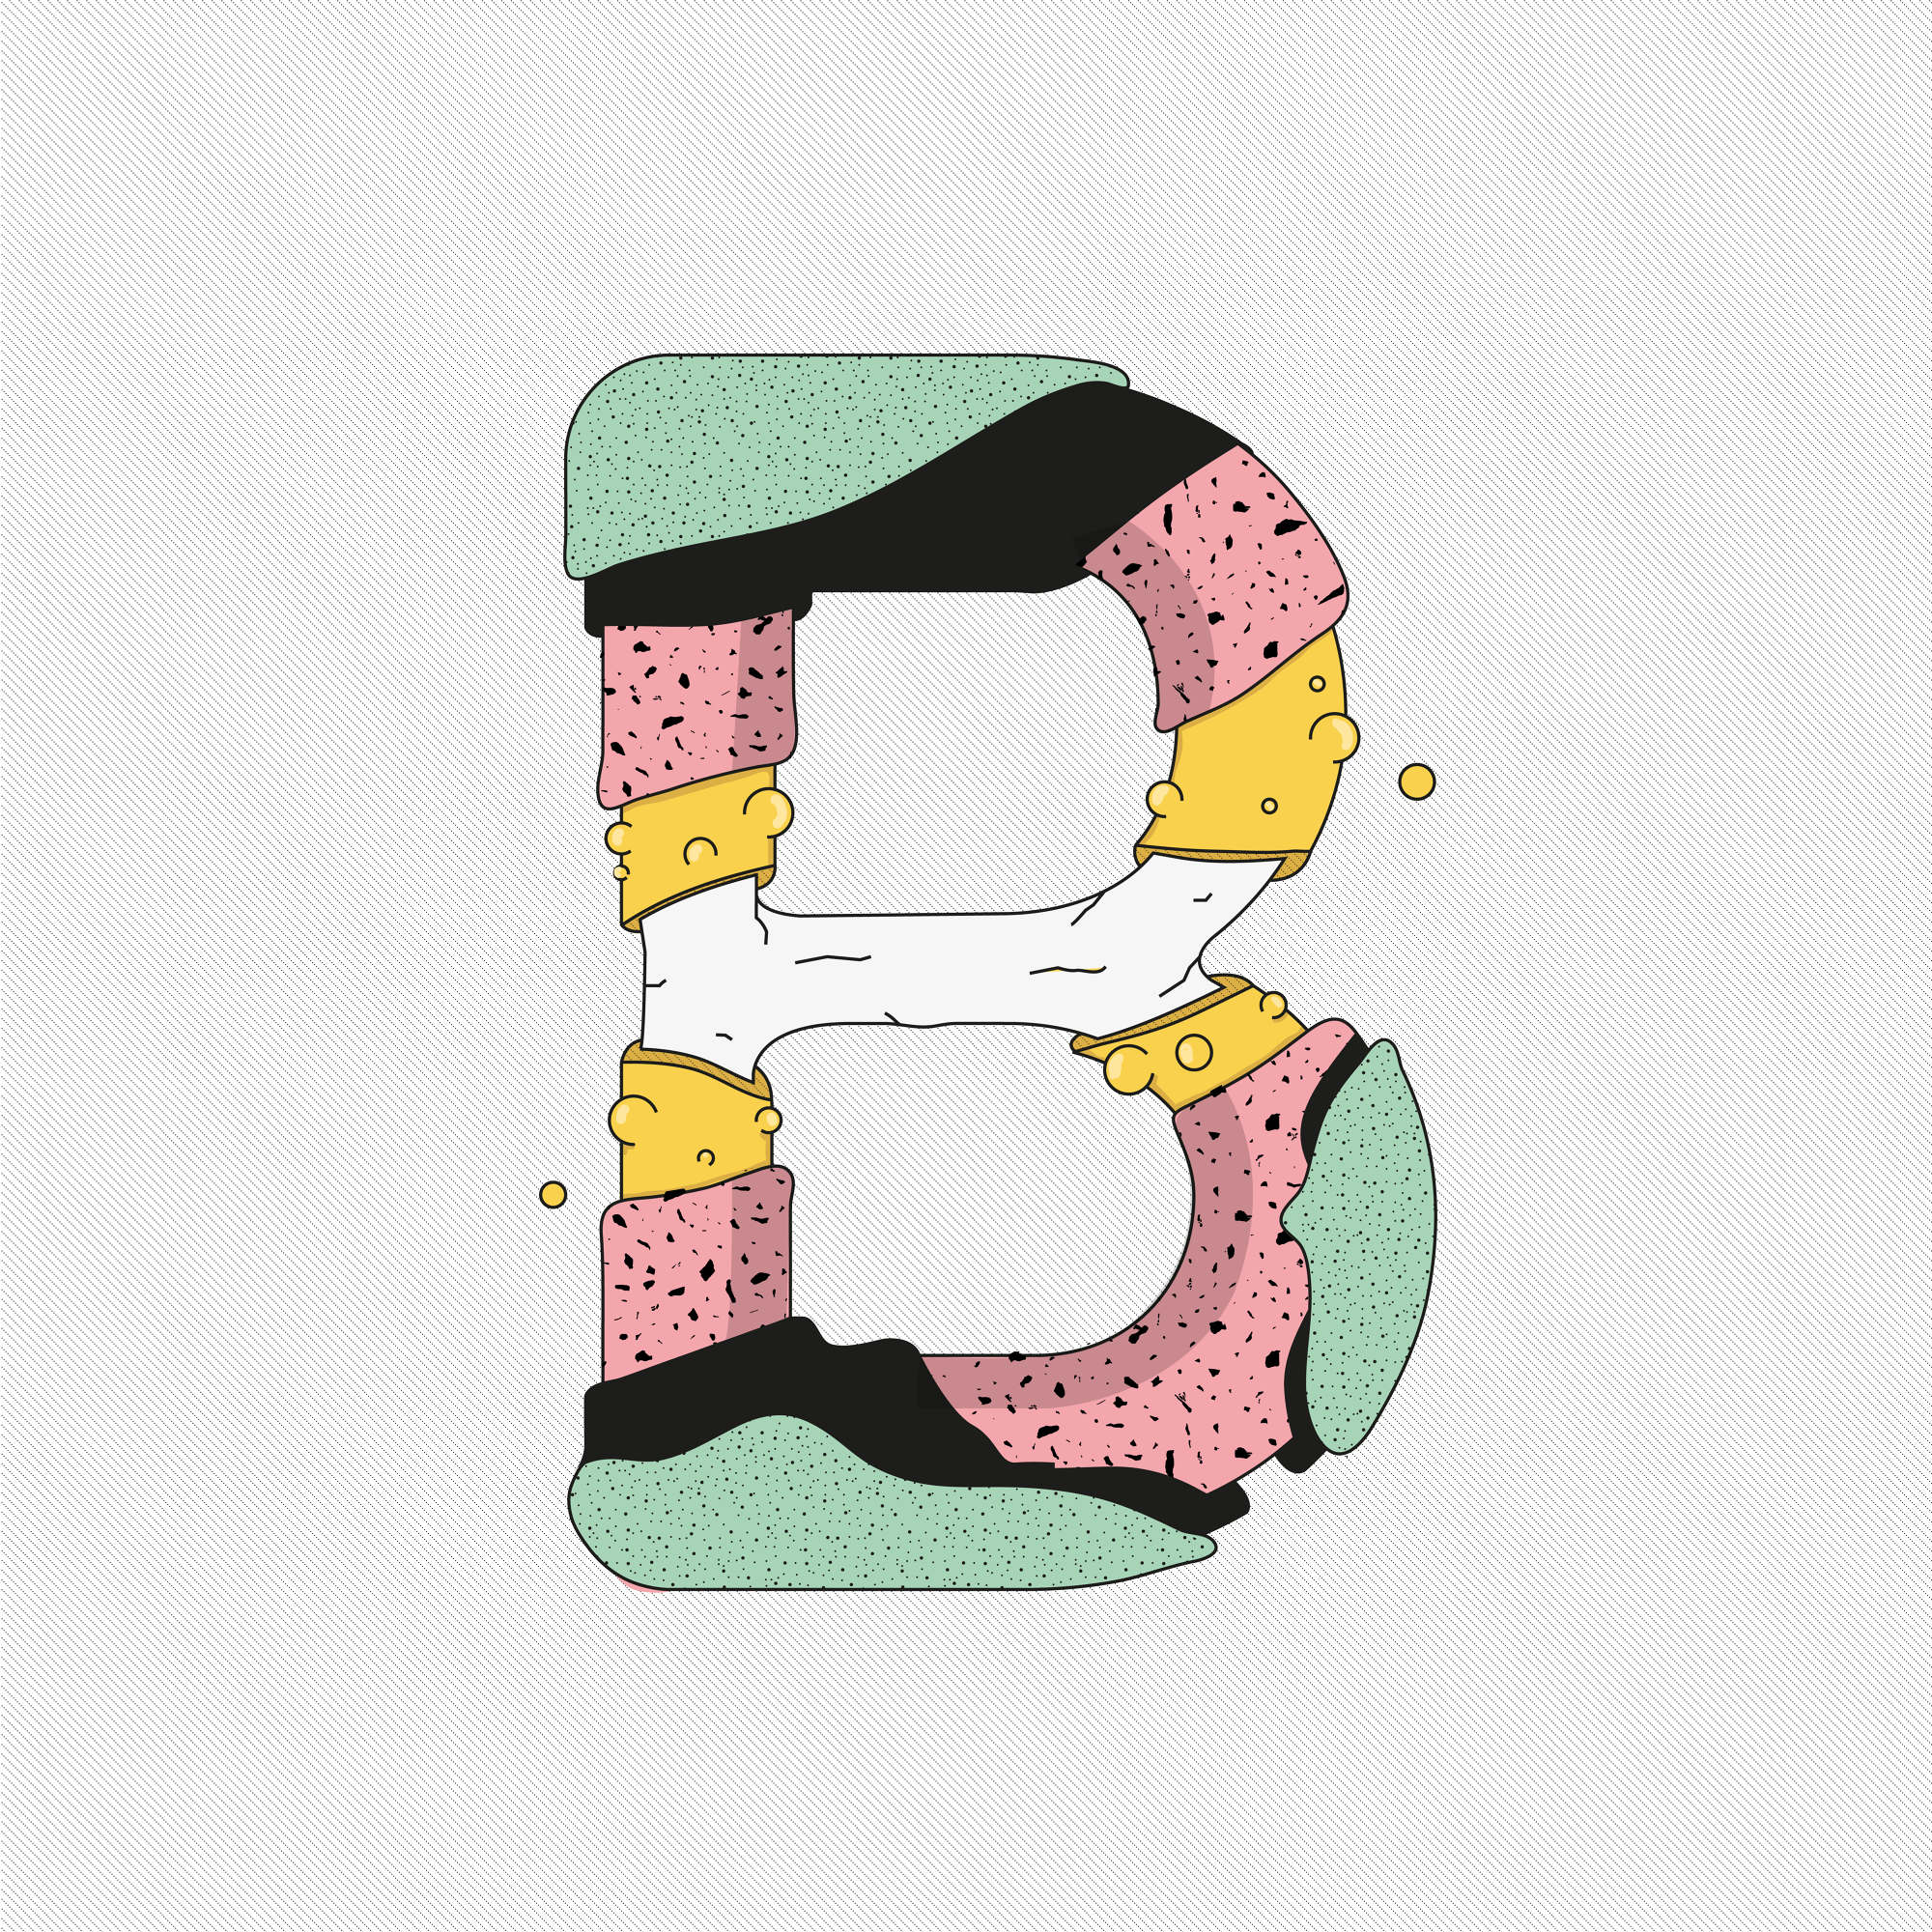 36 days of type, Mariano Pascual, 2015.